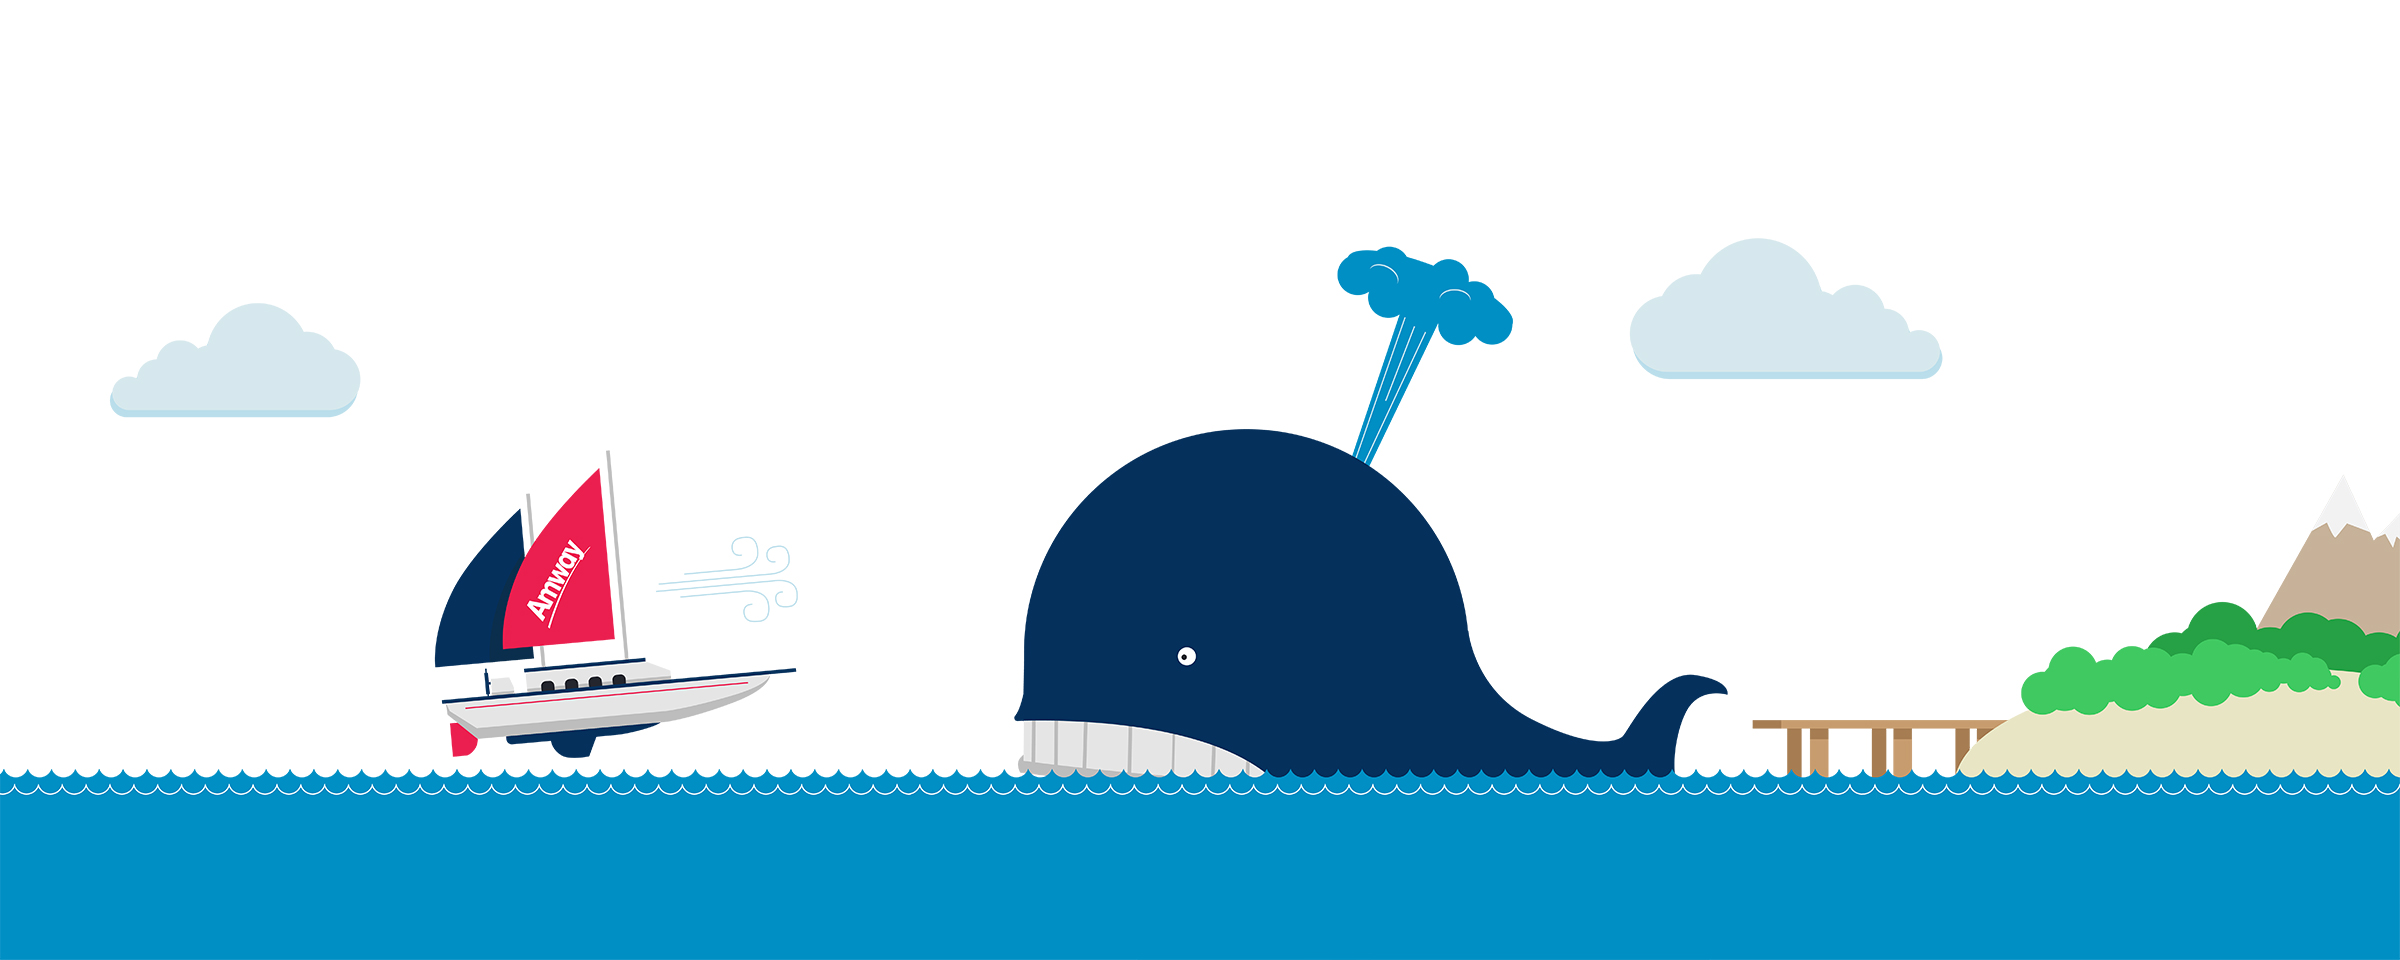 Blue Flame Thinking created this illustration of a sailboat and a whale for Amway's social content strategy.